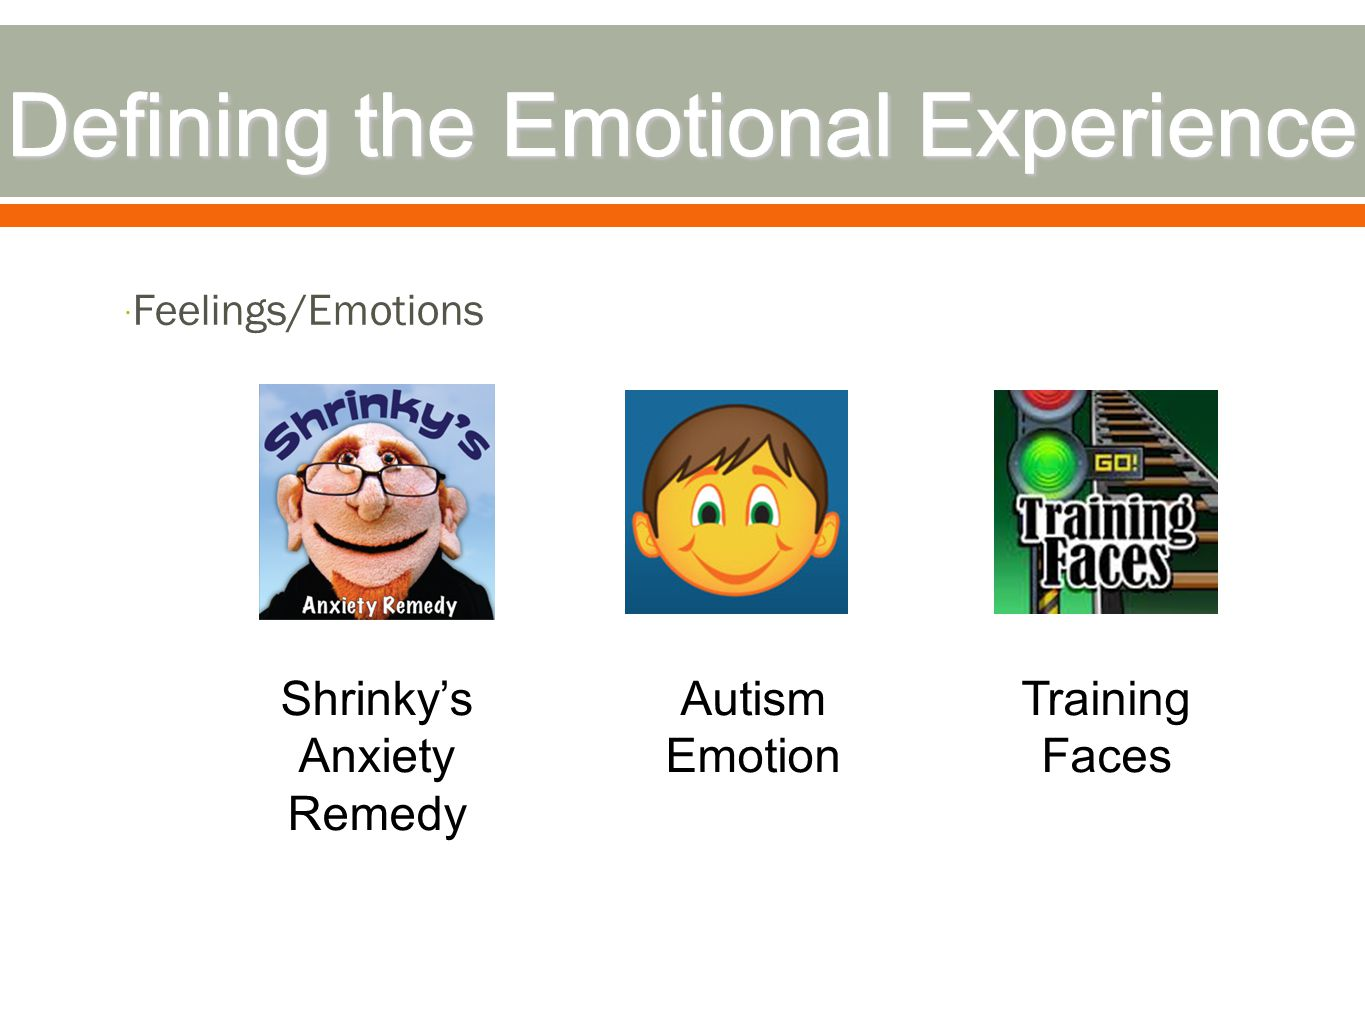  Feelings/Emotions Autism Emotion Shrinky's Anxiety Remedy Training Faces